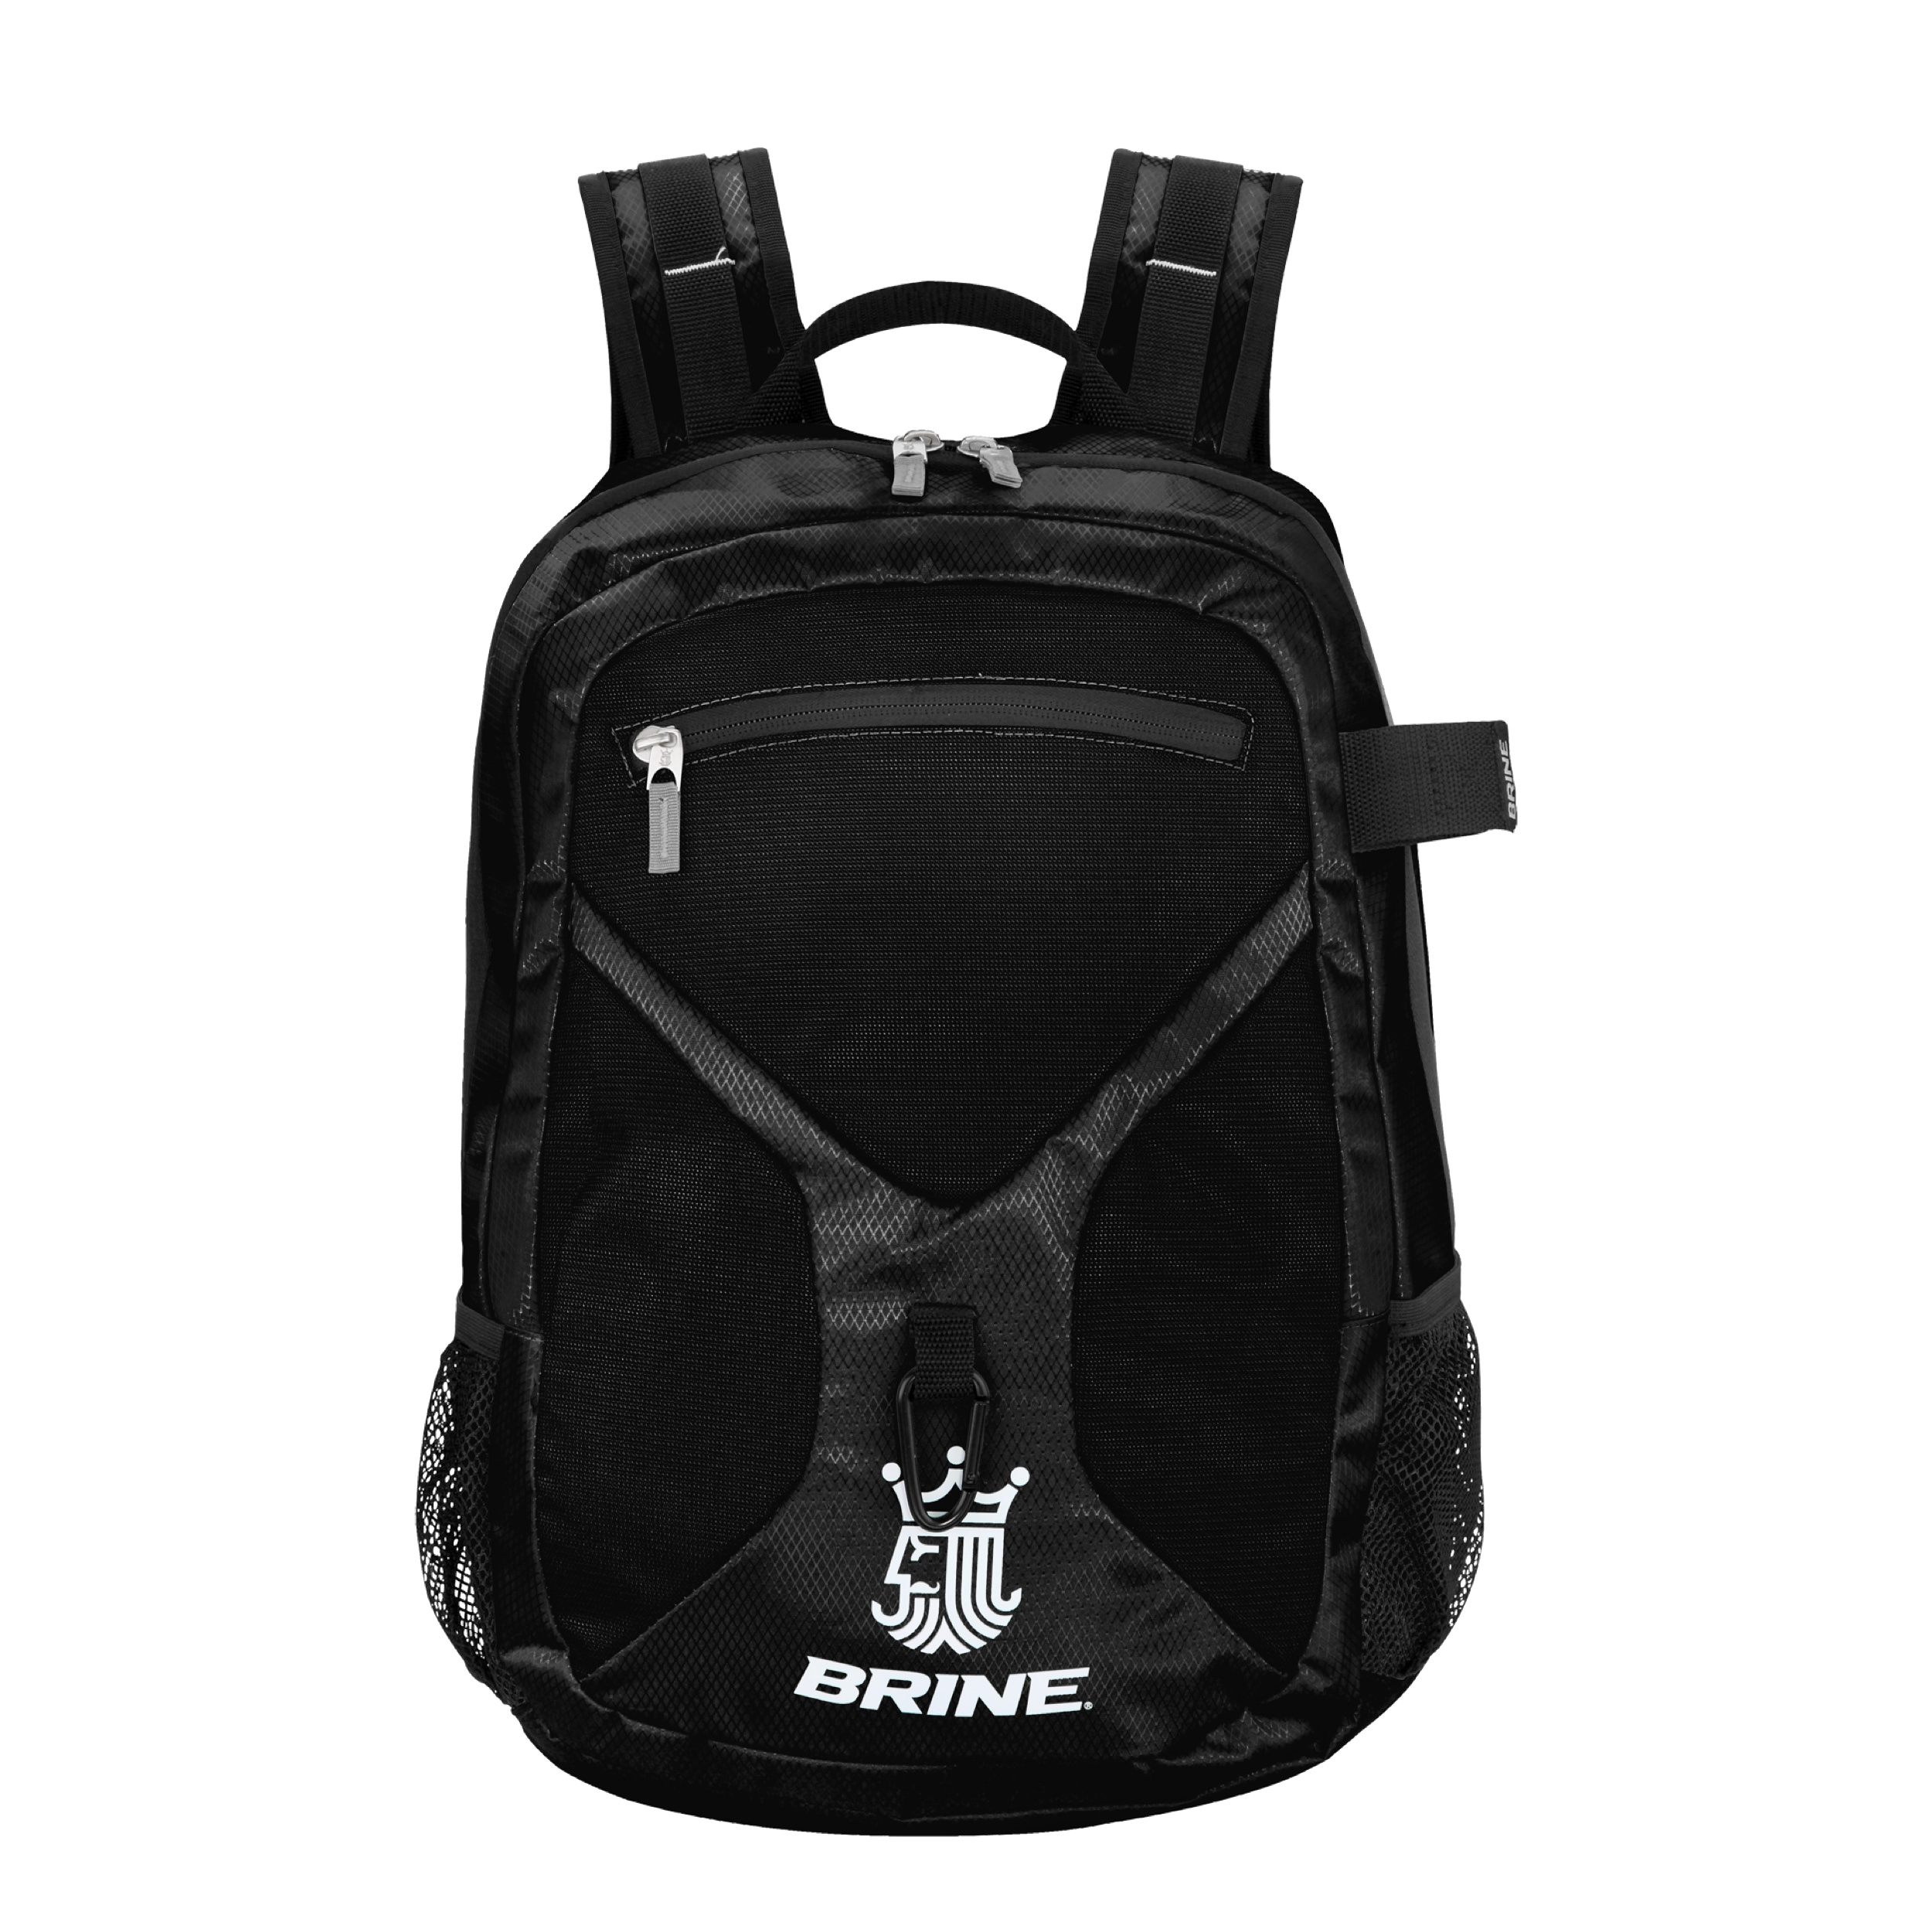 Brine Blue Print Back Pack